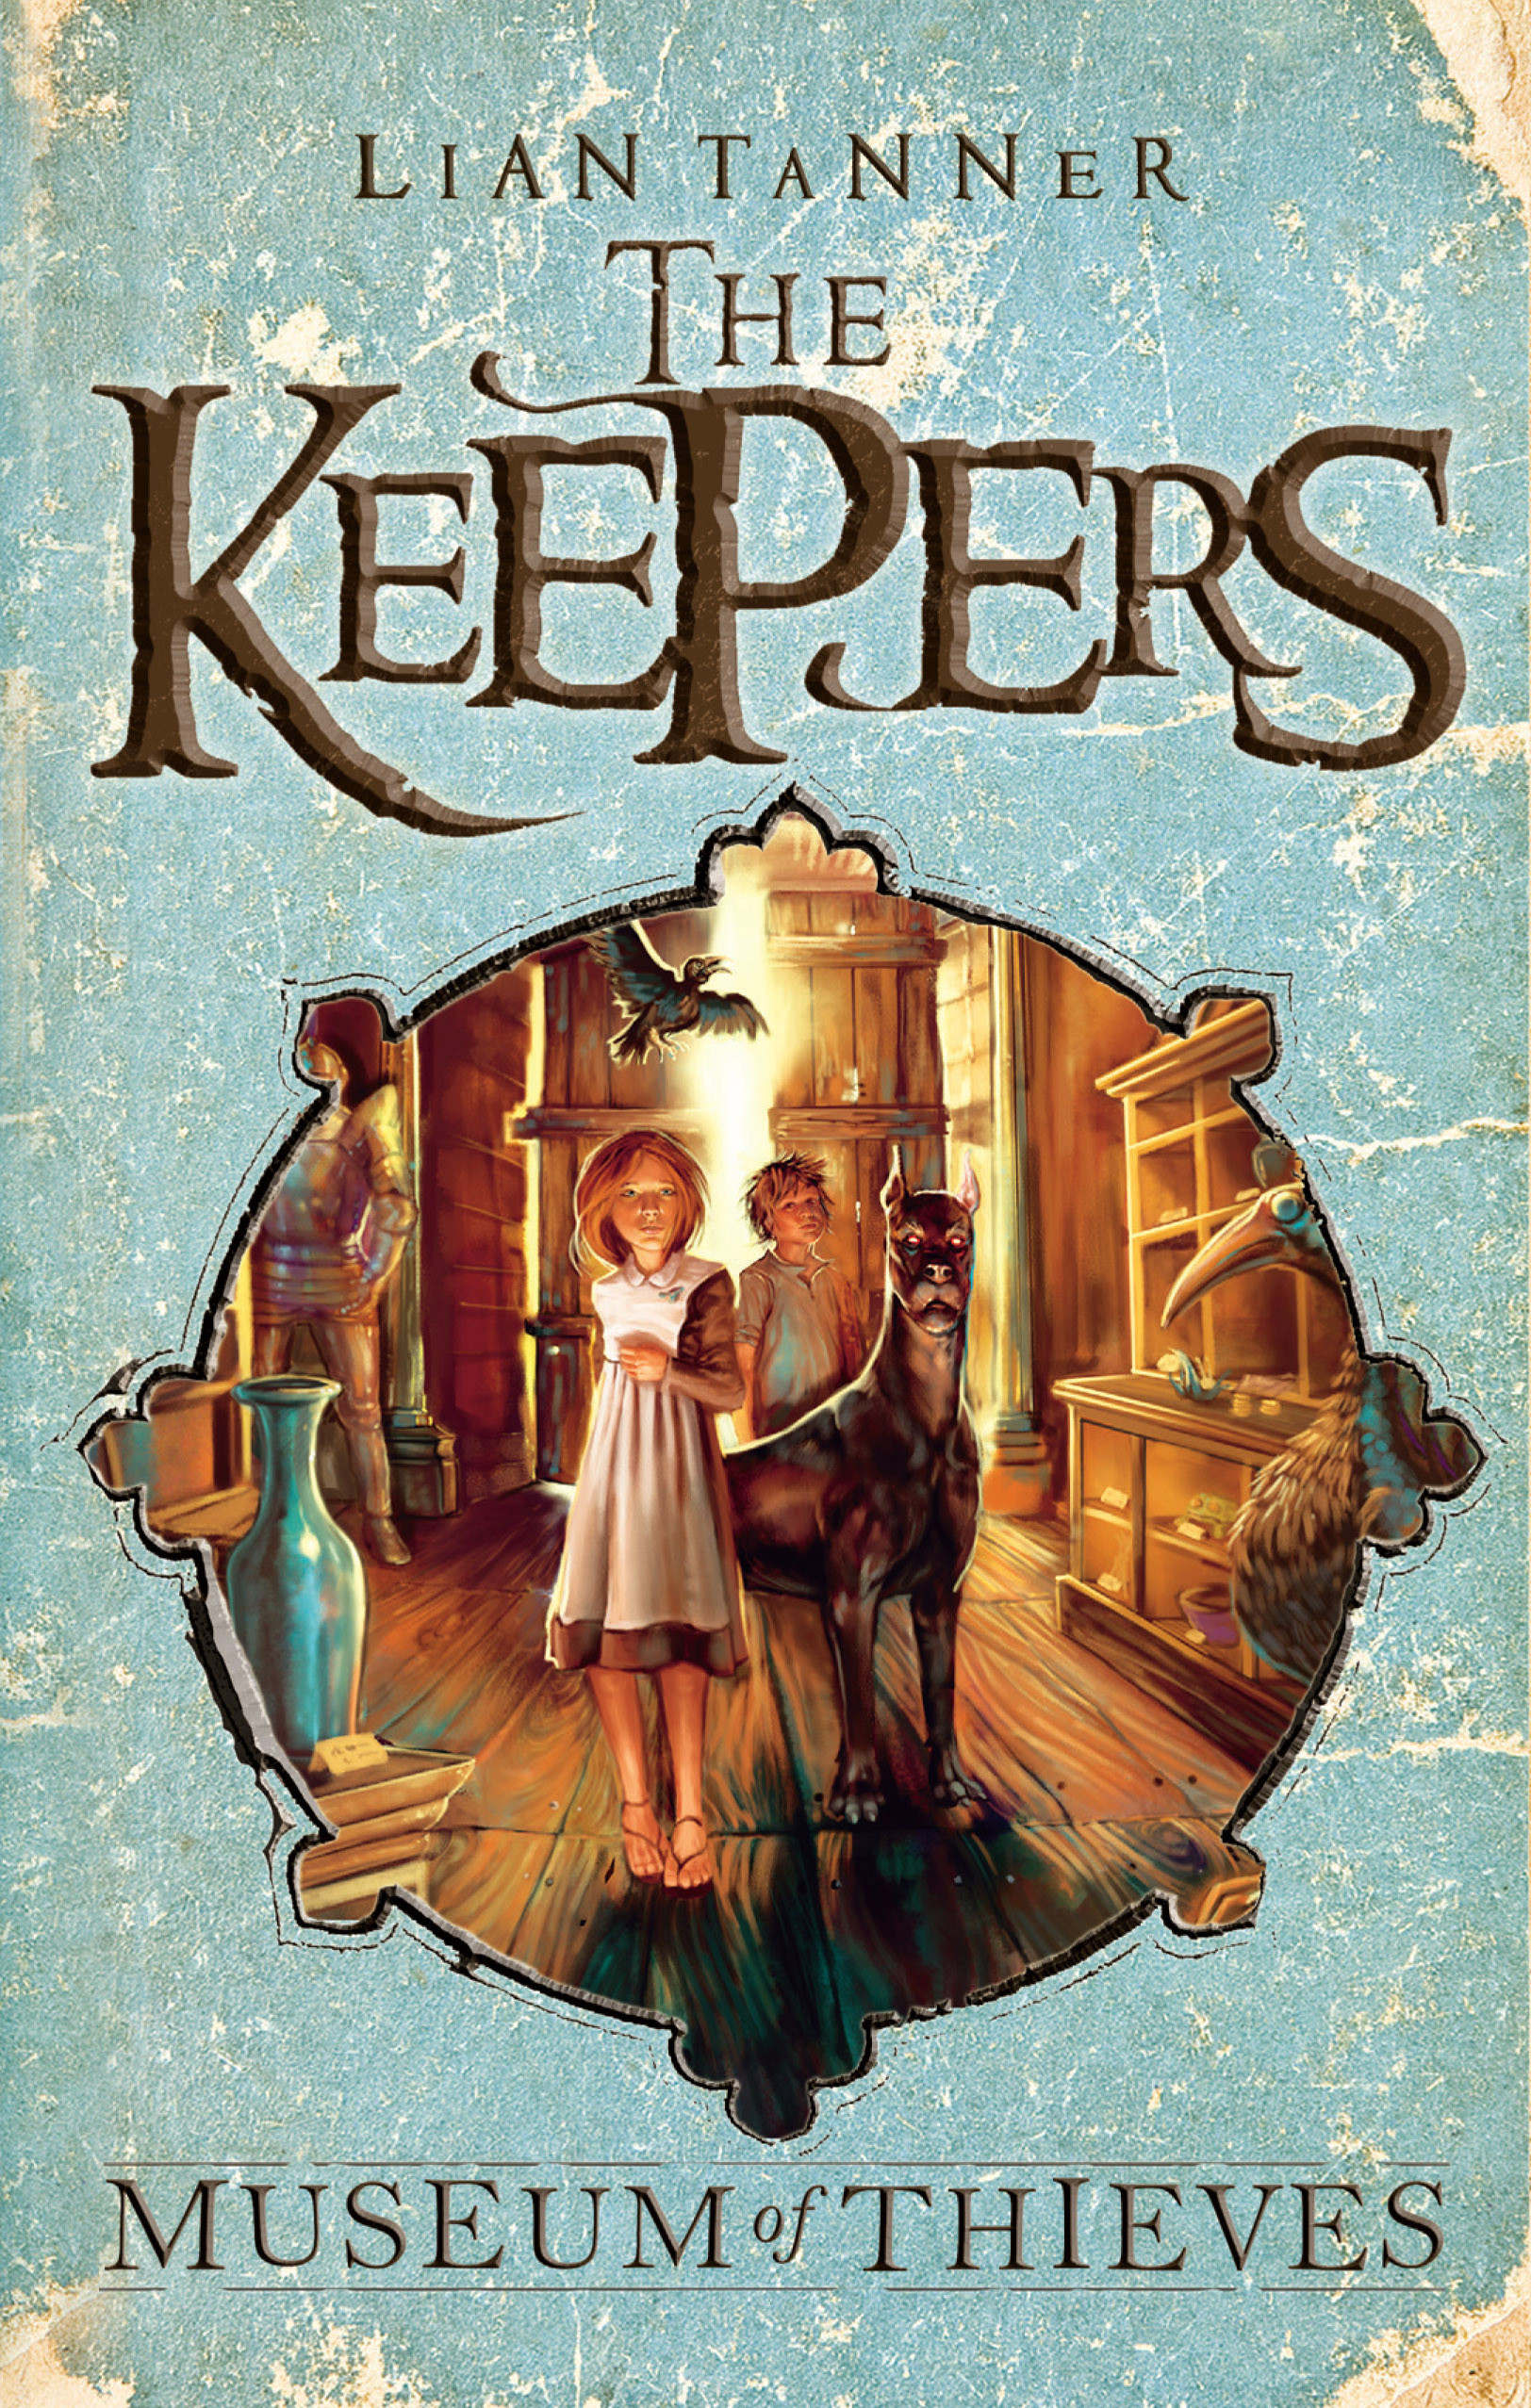 How To Make A Book Cover Look Old And Worn ~ Museum of thieves: the keepers 1 lian tanner illustrated by